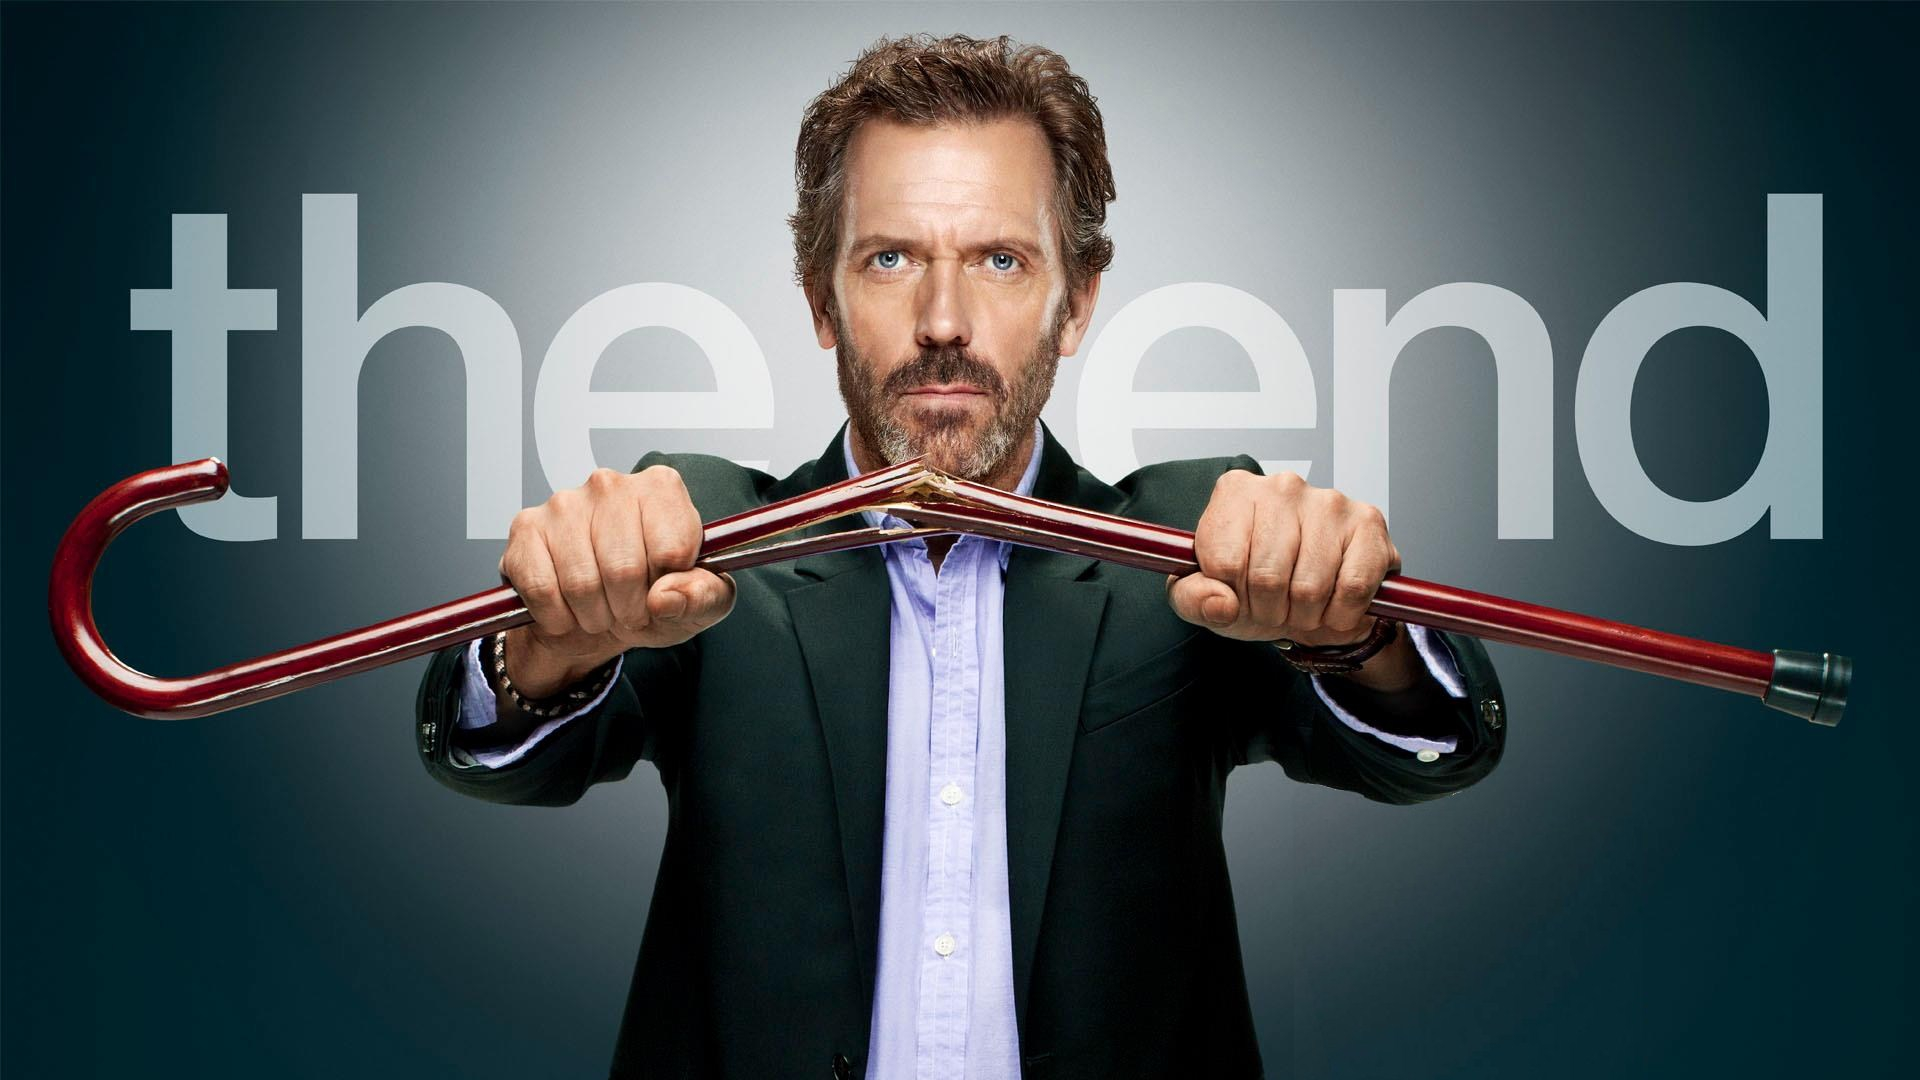 Dr. Gregory House from House M.D.